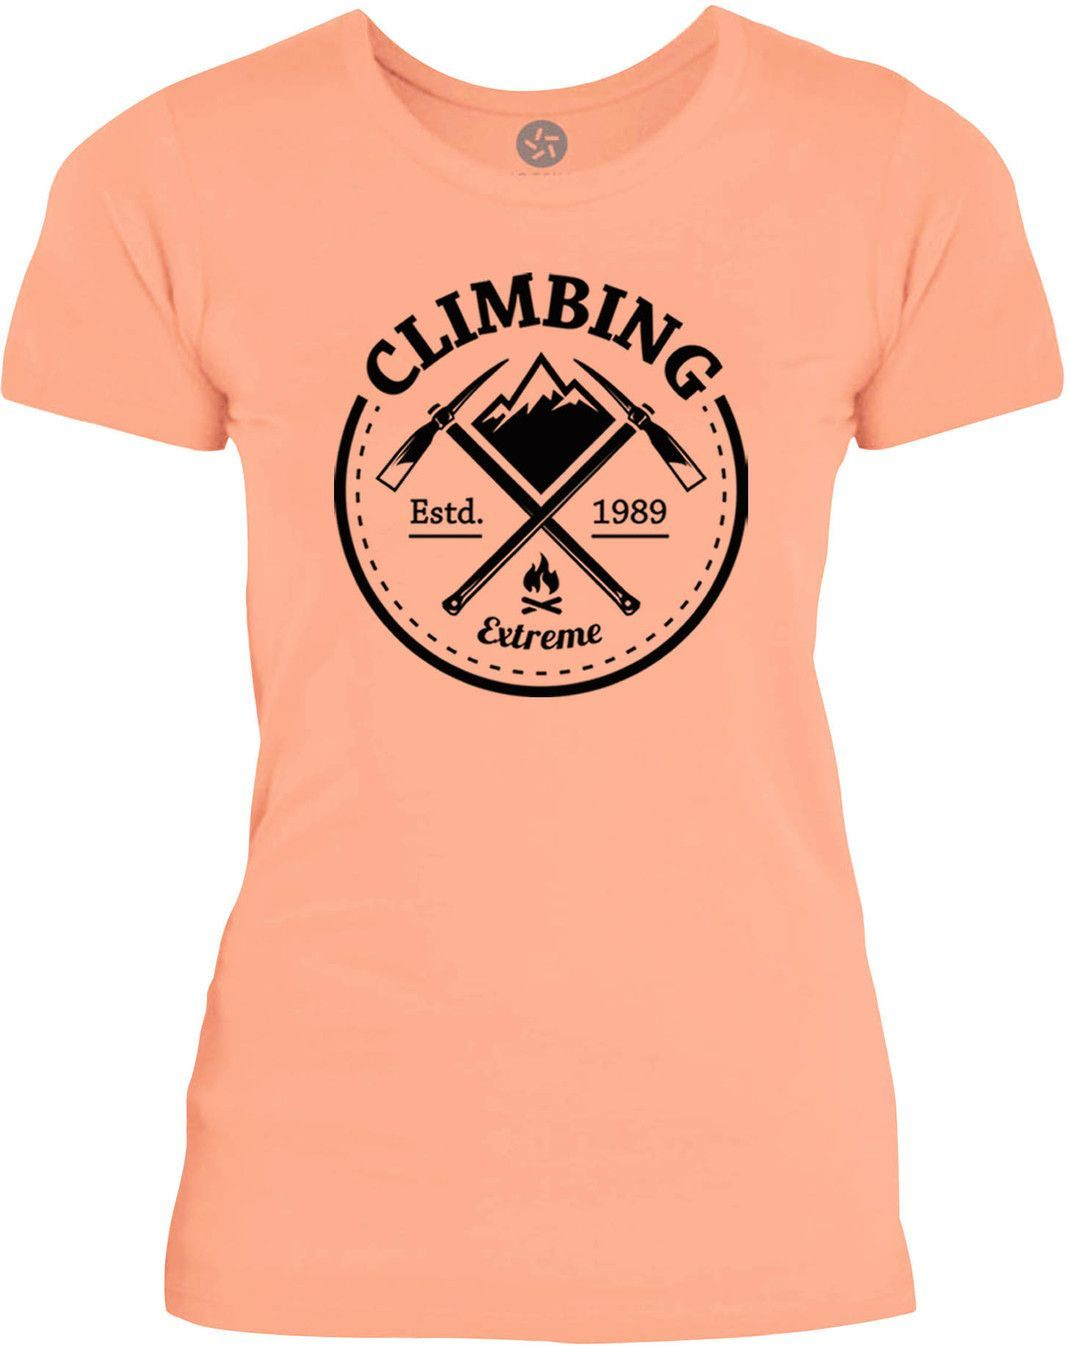 Big Texas Extreme Climbing (Black) Womens Fine Jersey T-Shirt